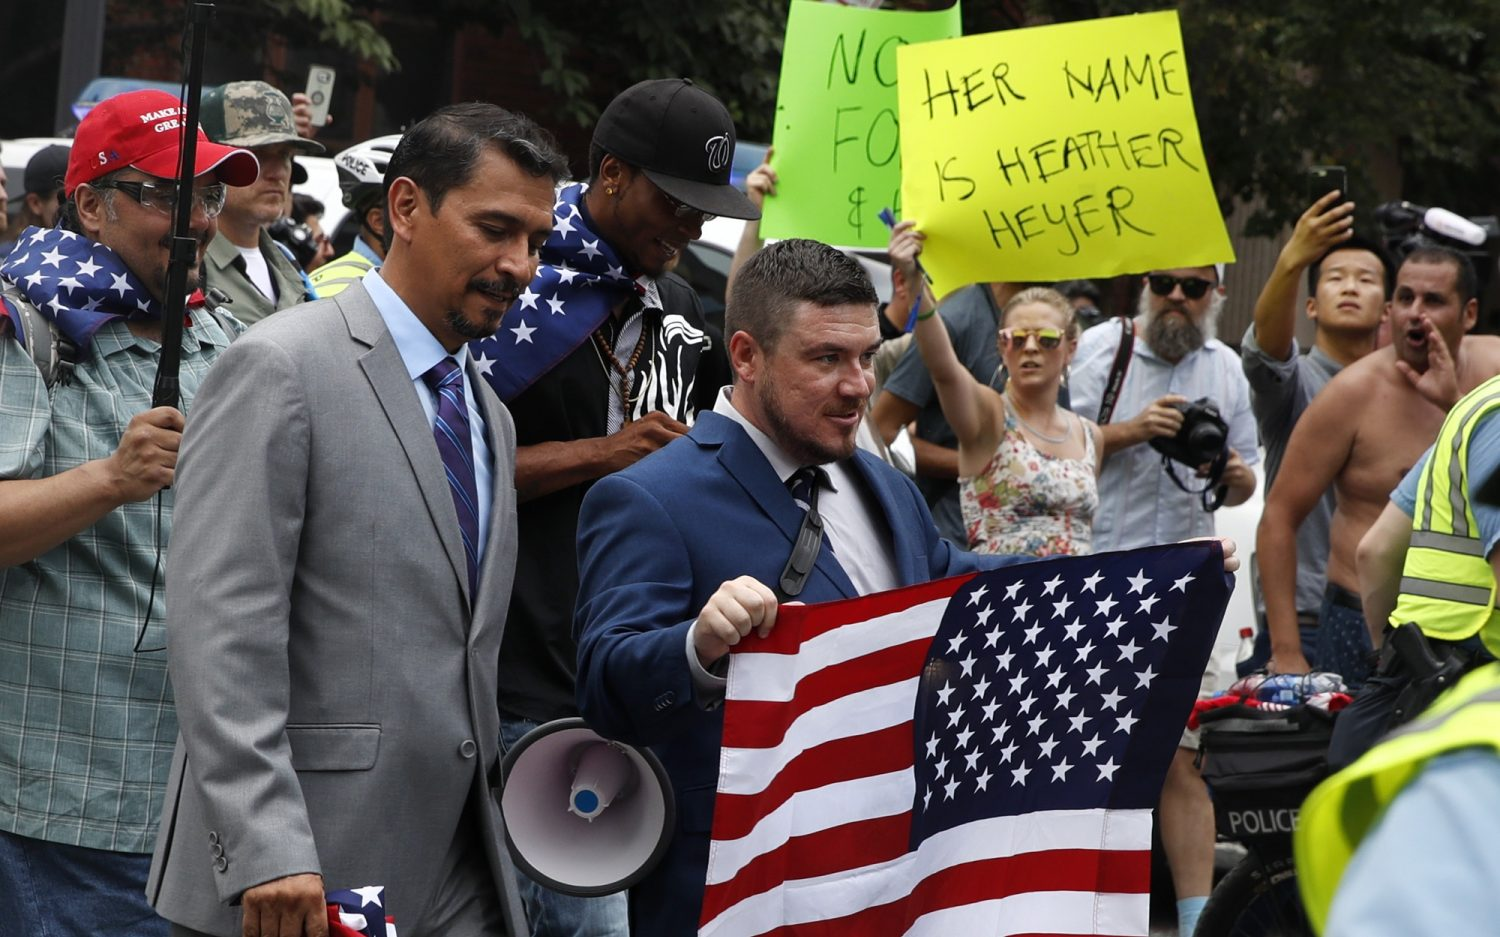 D.C. keeps peace during white supremacist march